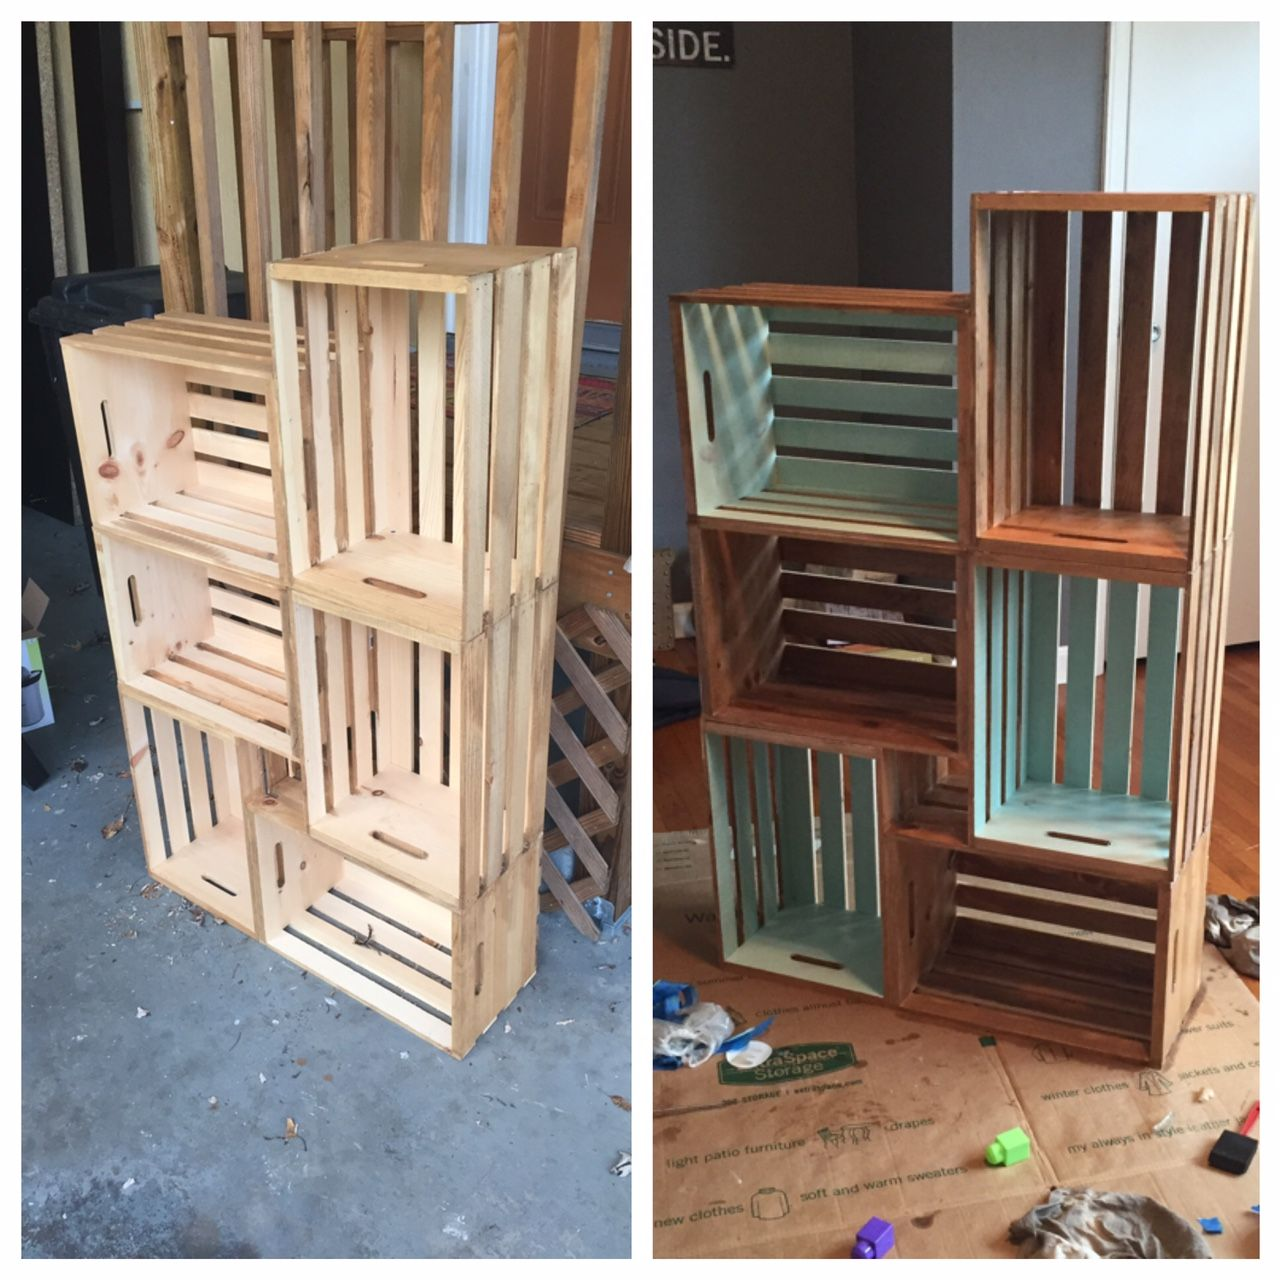 6 Wooden Crates From Walmart Stain And Chalk Paint